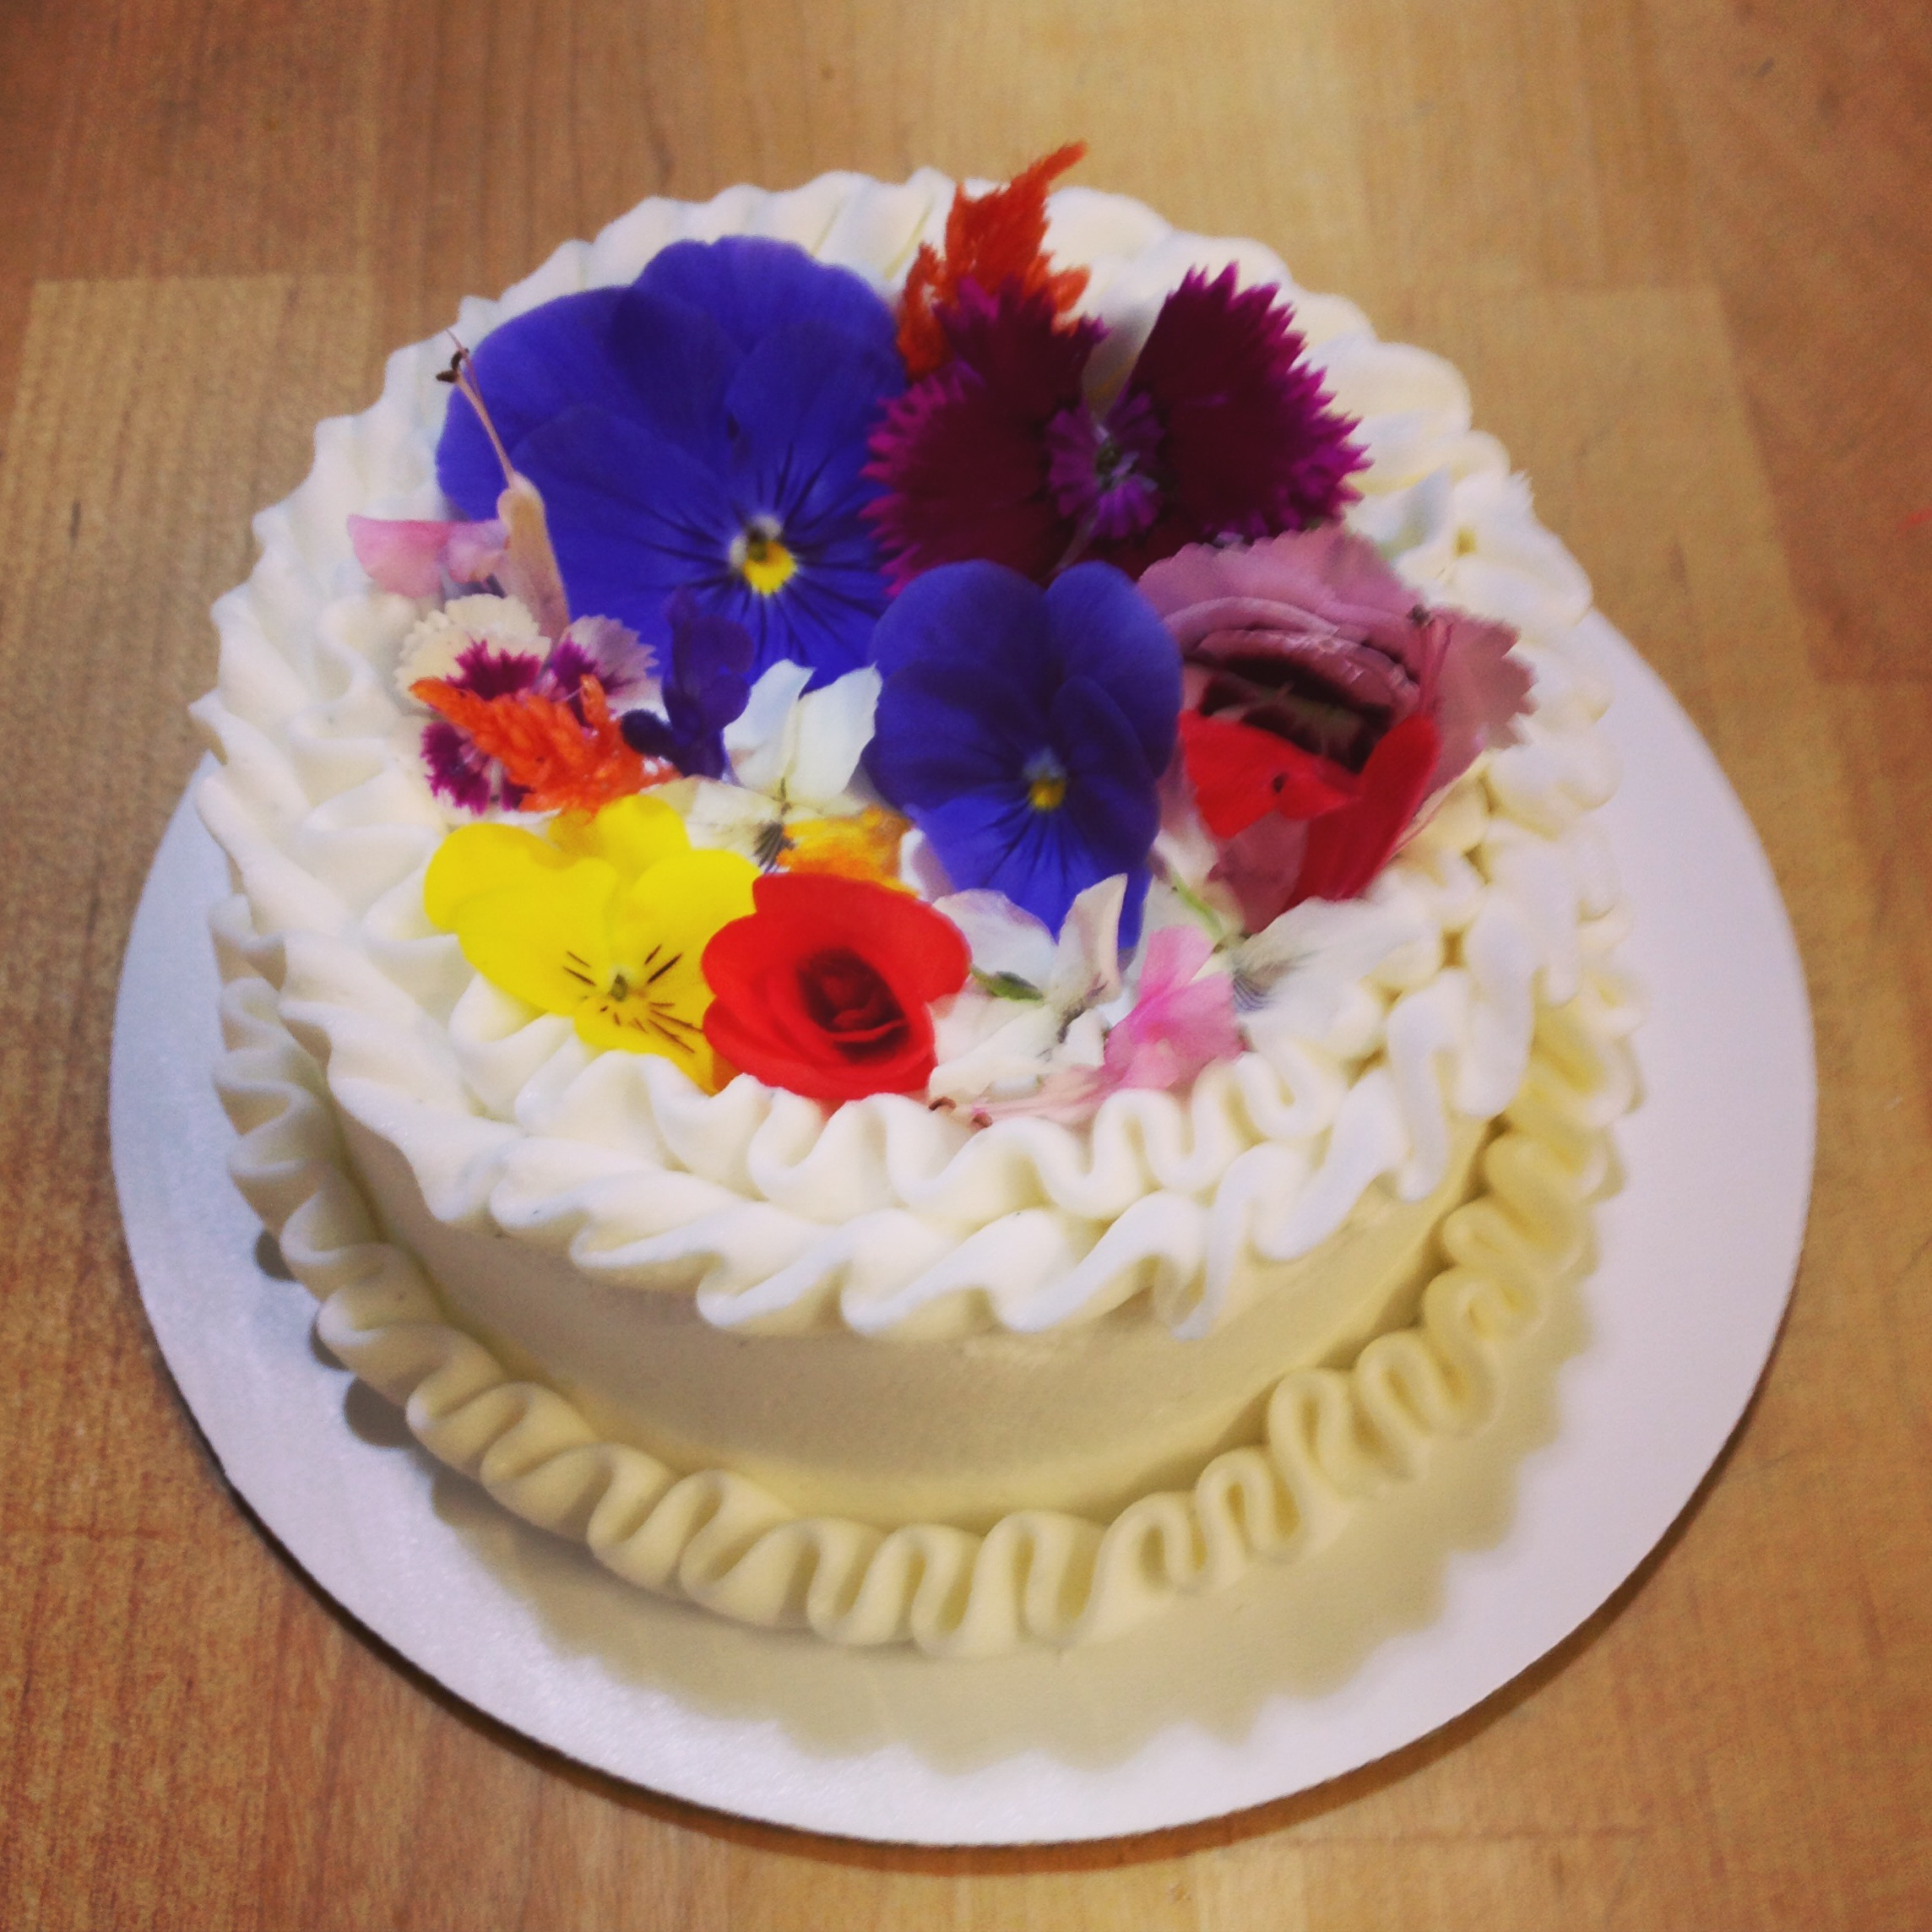 edible flower topped cake